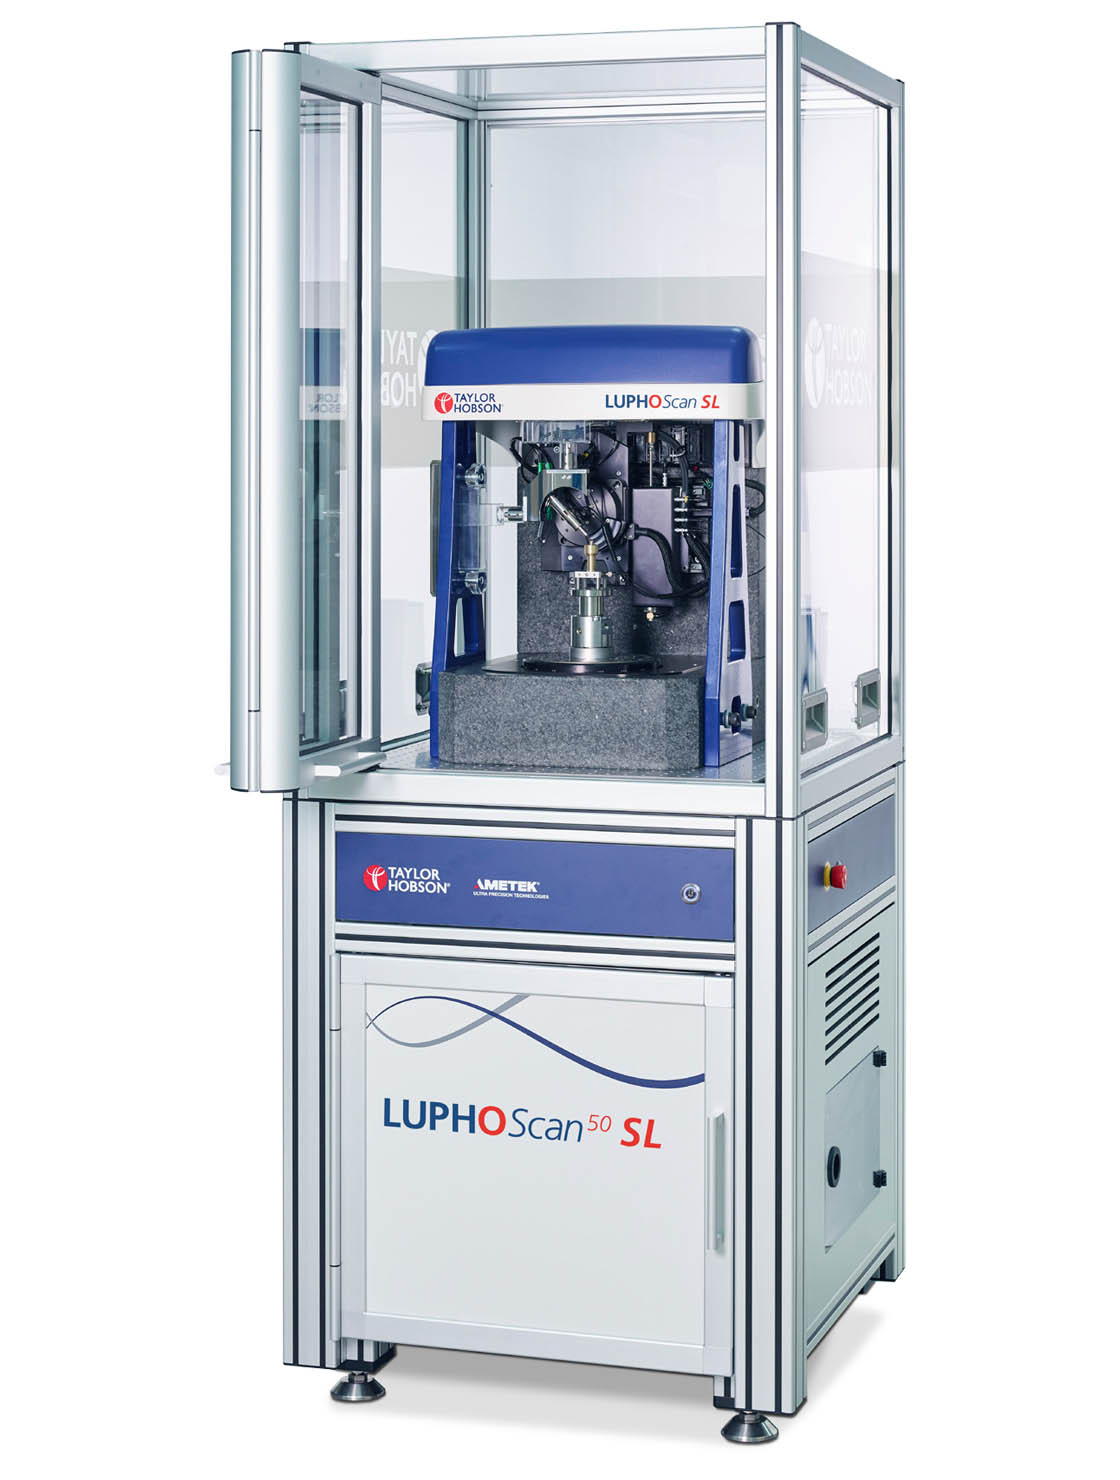 LUPHOScan-SL Profilometer for Non-contact 3d Smll Optical Surface Form Measurement